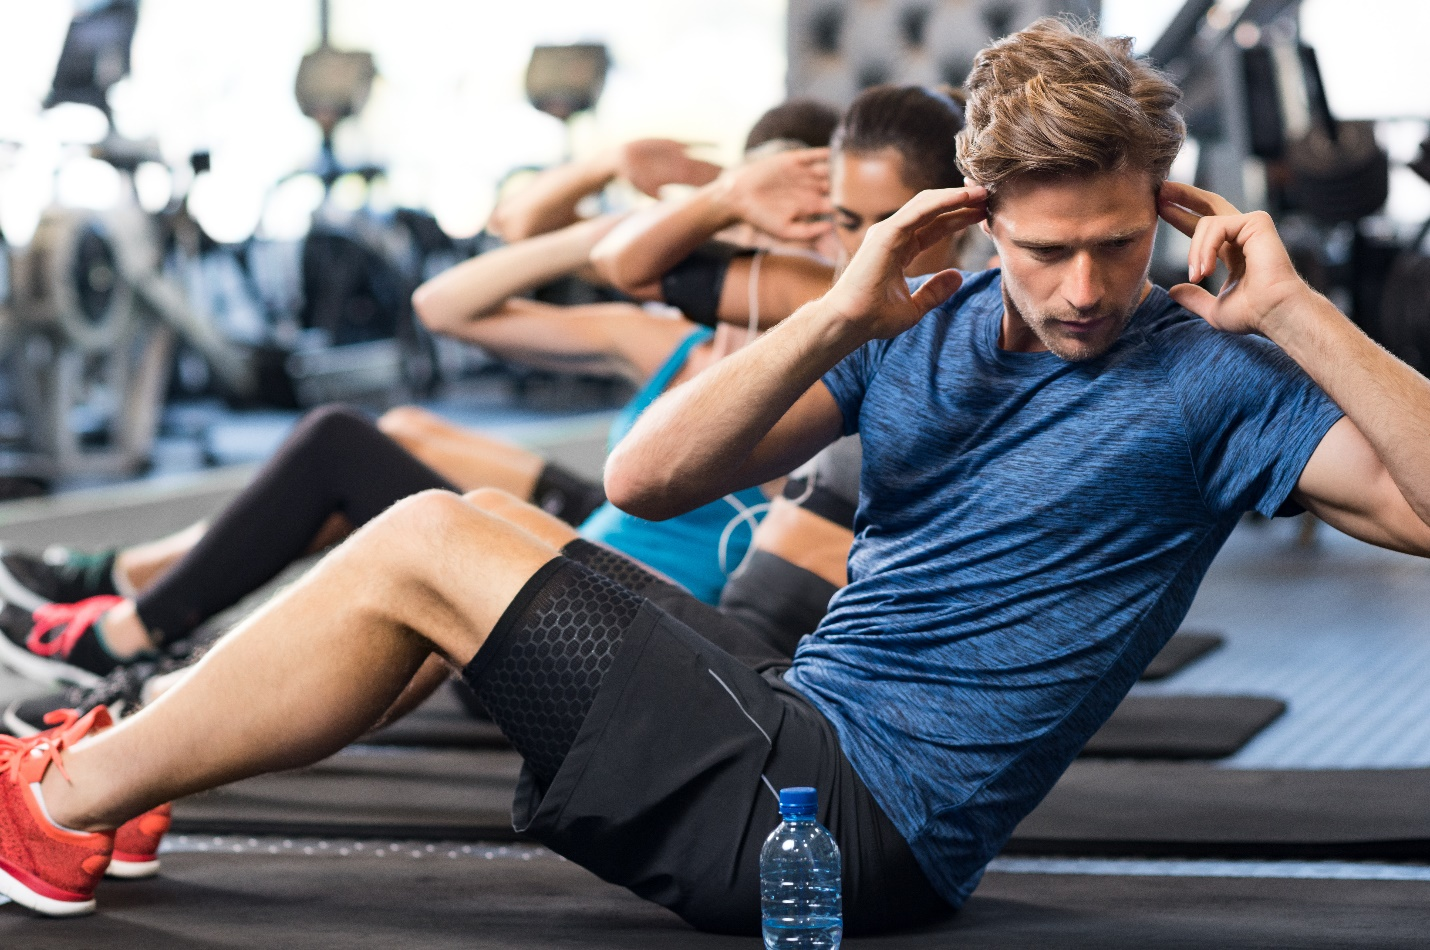 muscular guy doing sit ups at gym with other peopl